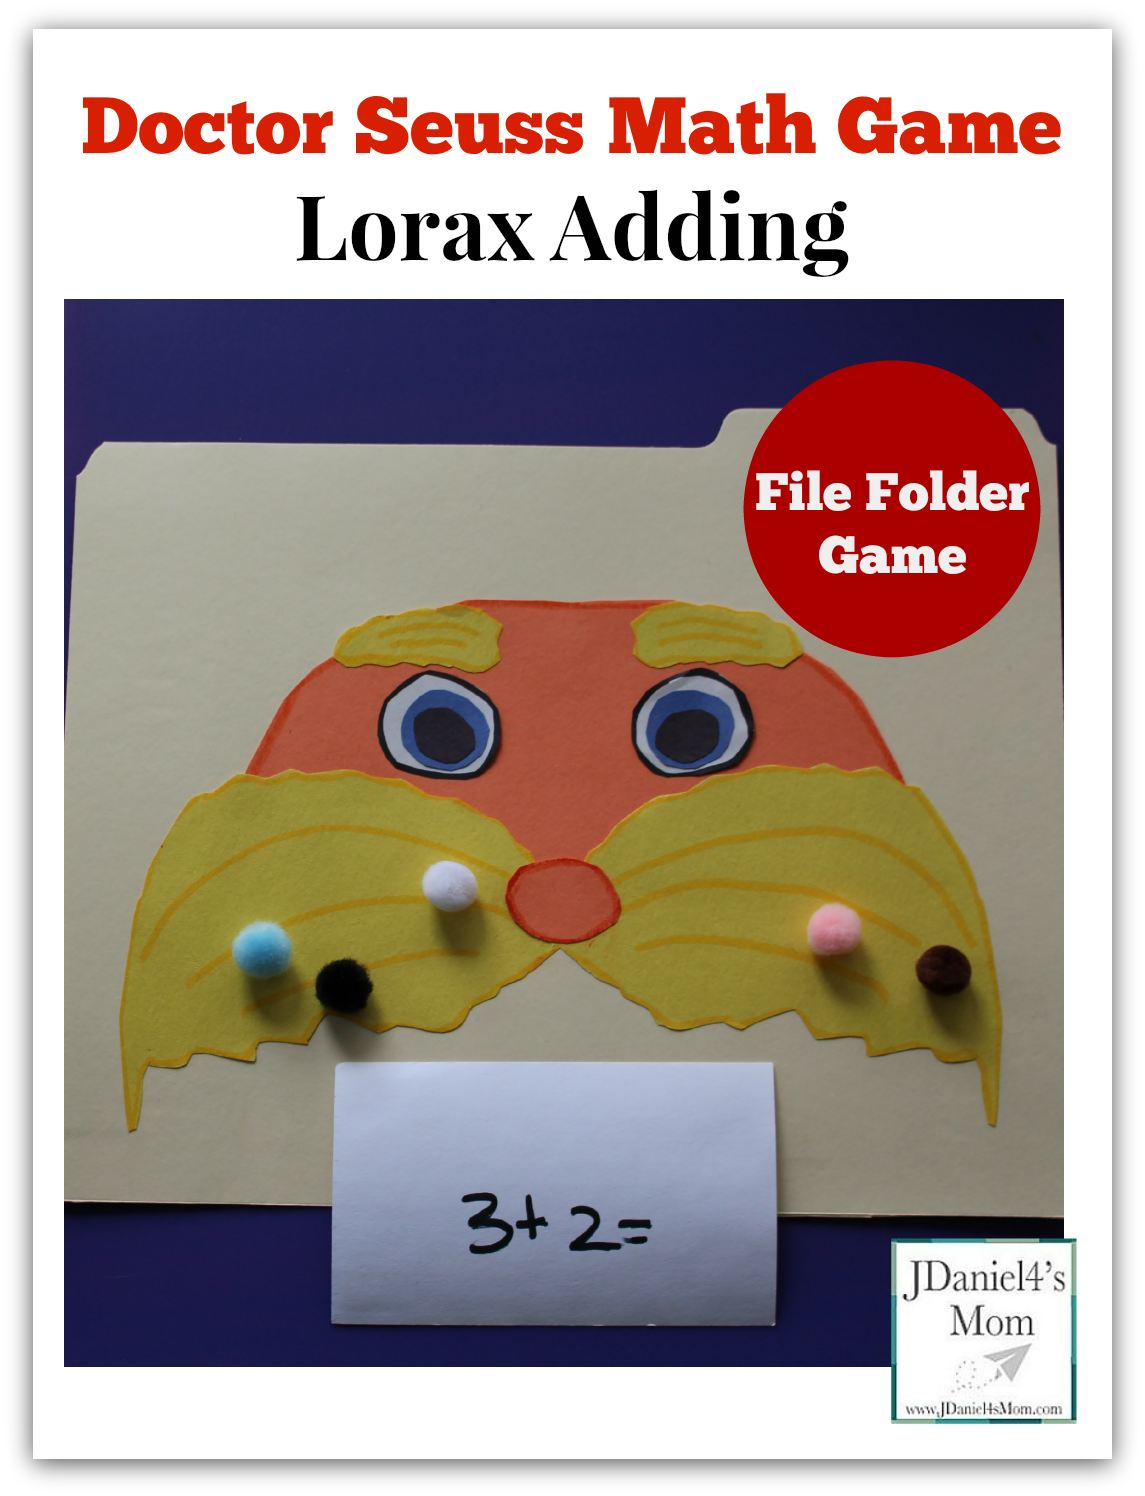 doctor seuss math game lorax adding with file folder